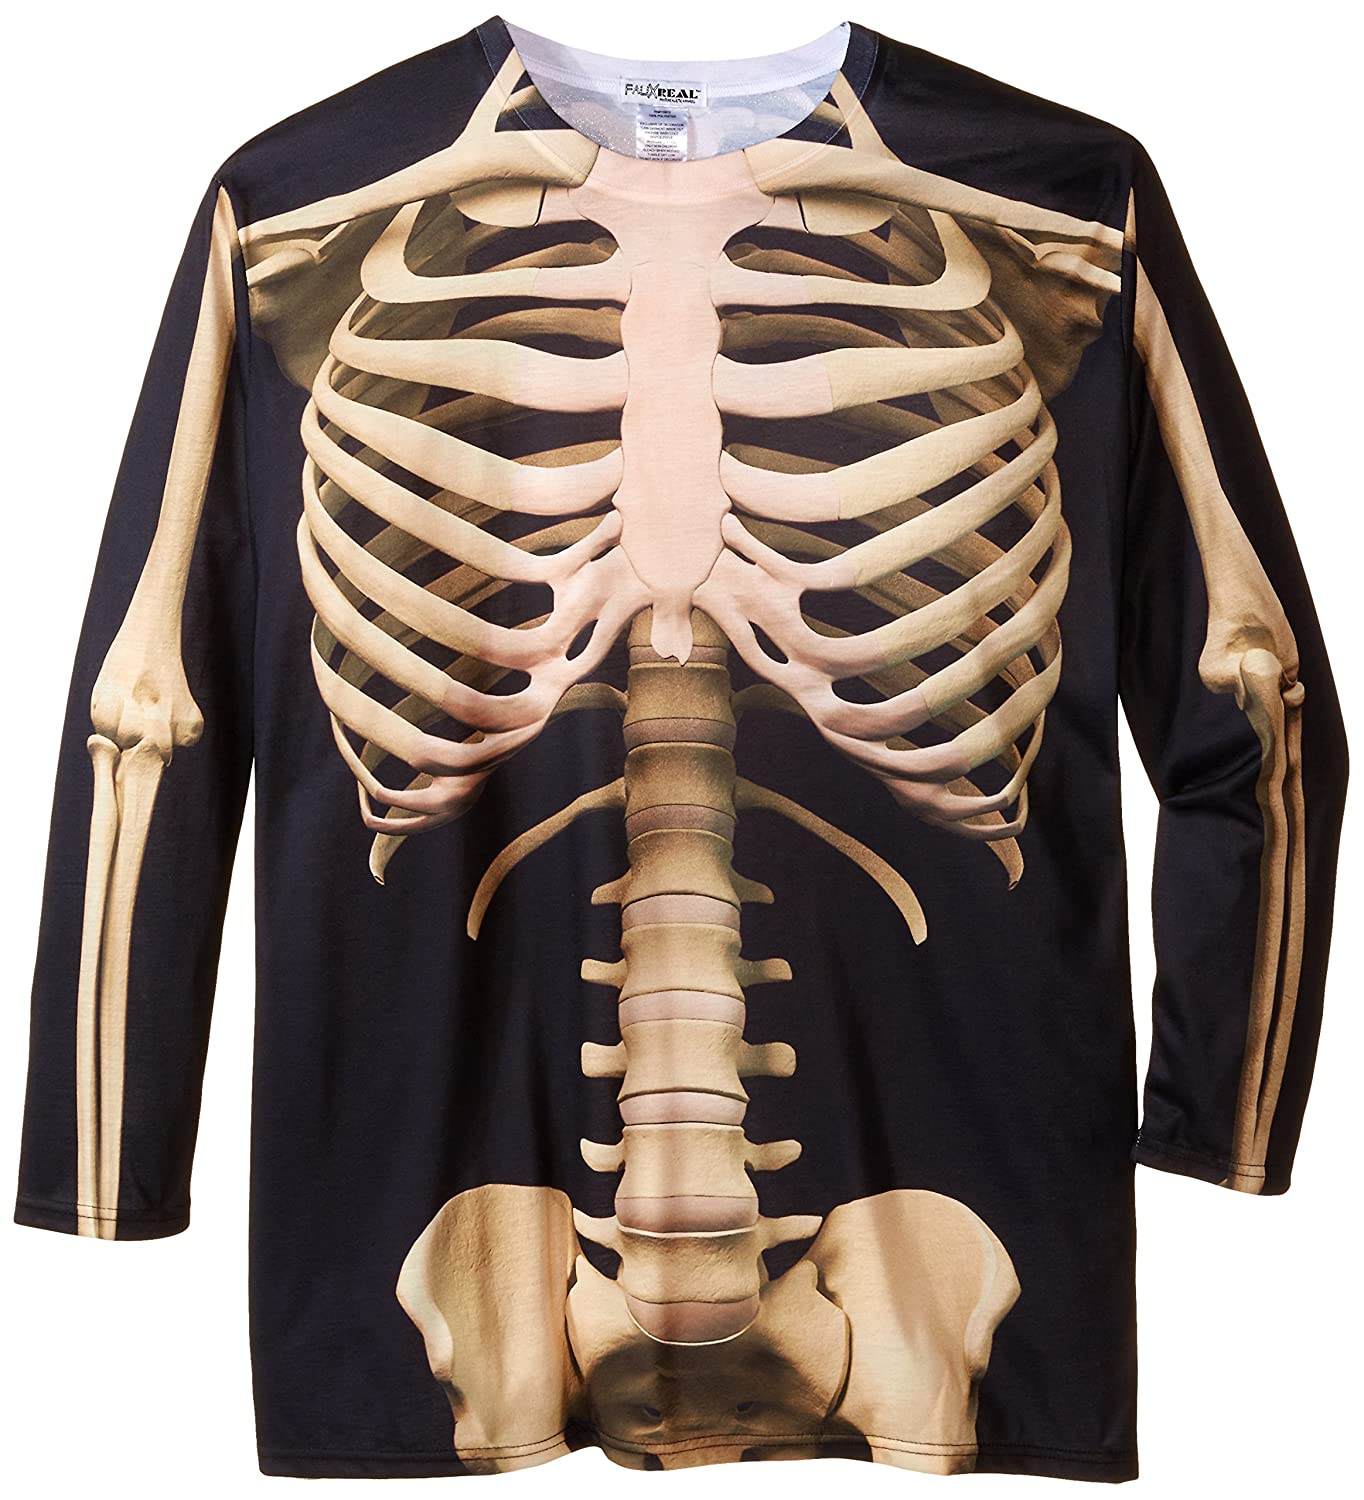 Amazon.com Faux Real Menu0027s Big-Tall Big Size Skeleton Big Size Long Sleeve T-Shirt Clothing  sc 1 st  Amazon.com : halloween costumes for tall people  - Germanpascual.Com